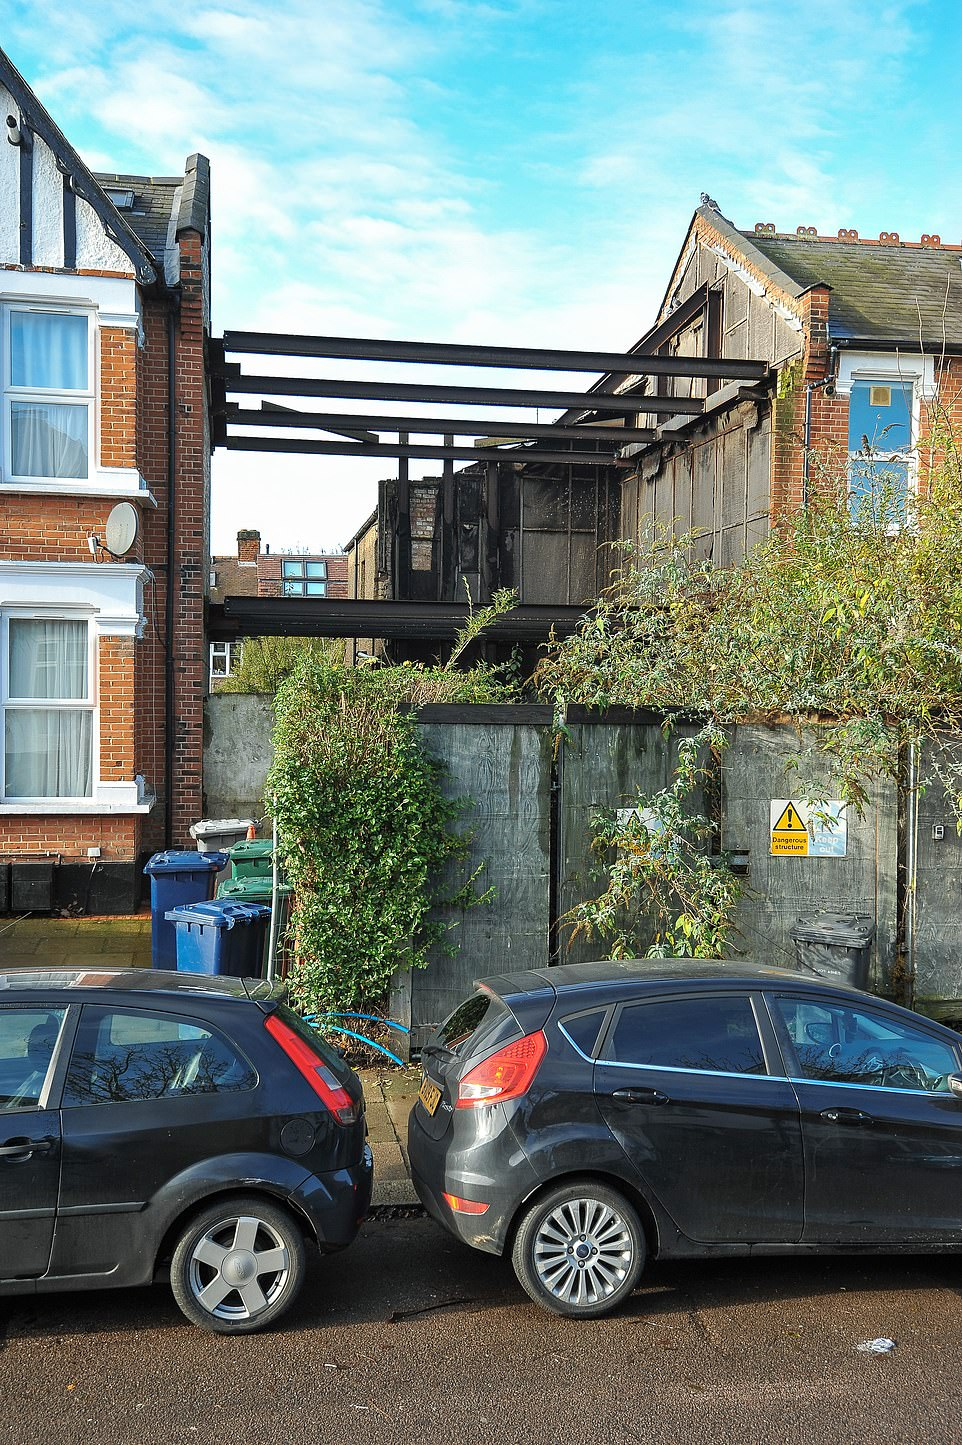 At the time Barnet Council declared the house a 'dangerous' structure that had to be demolished, along with everything inside, from precious photo albums including their first baby scan to family heirlooms